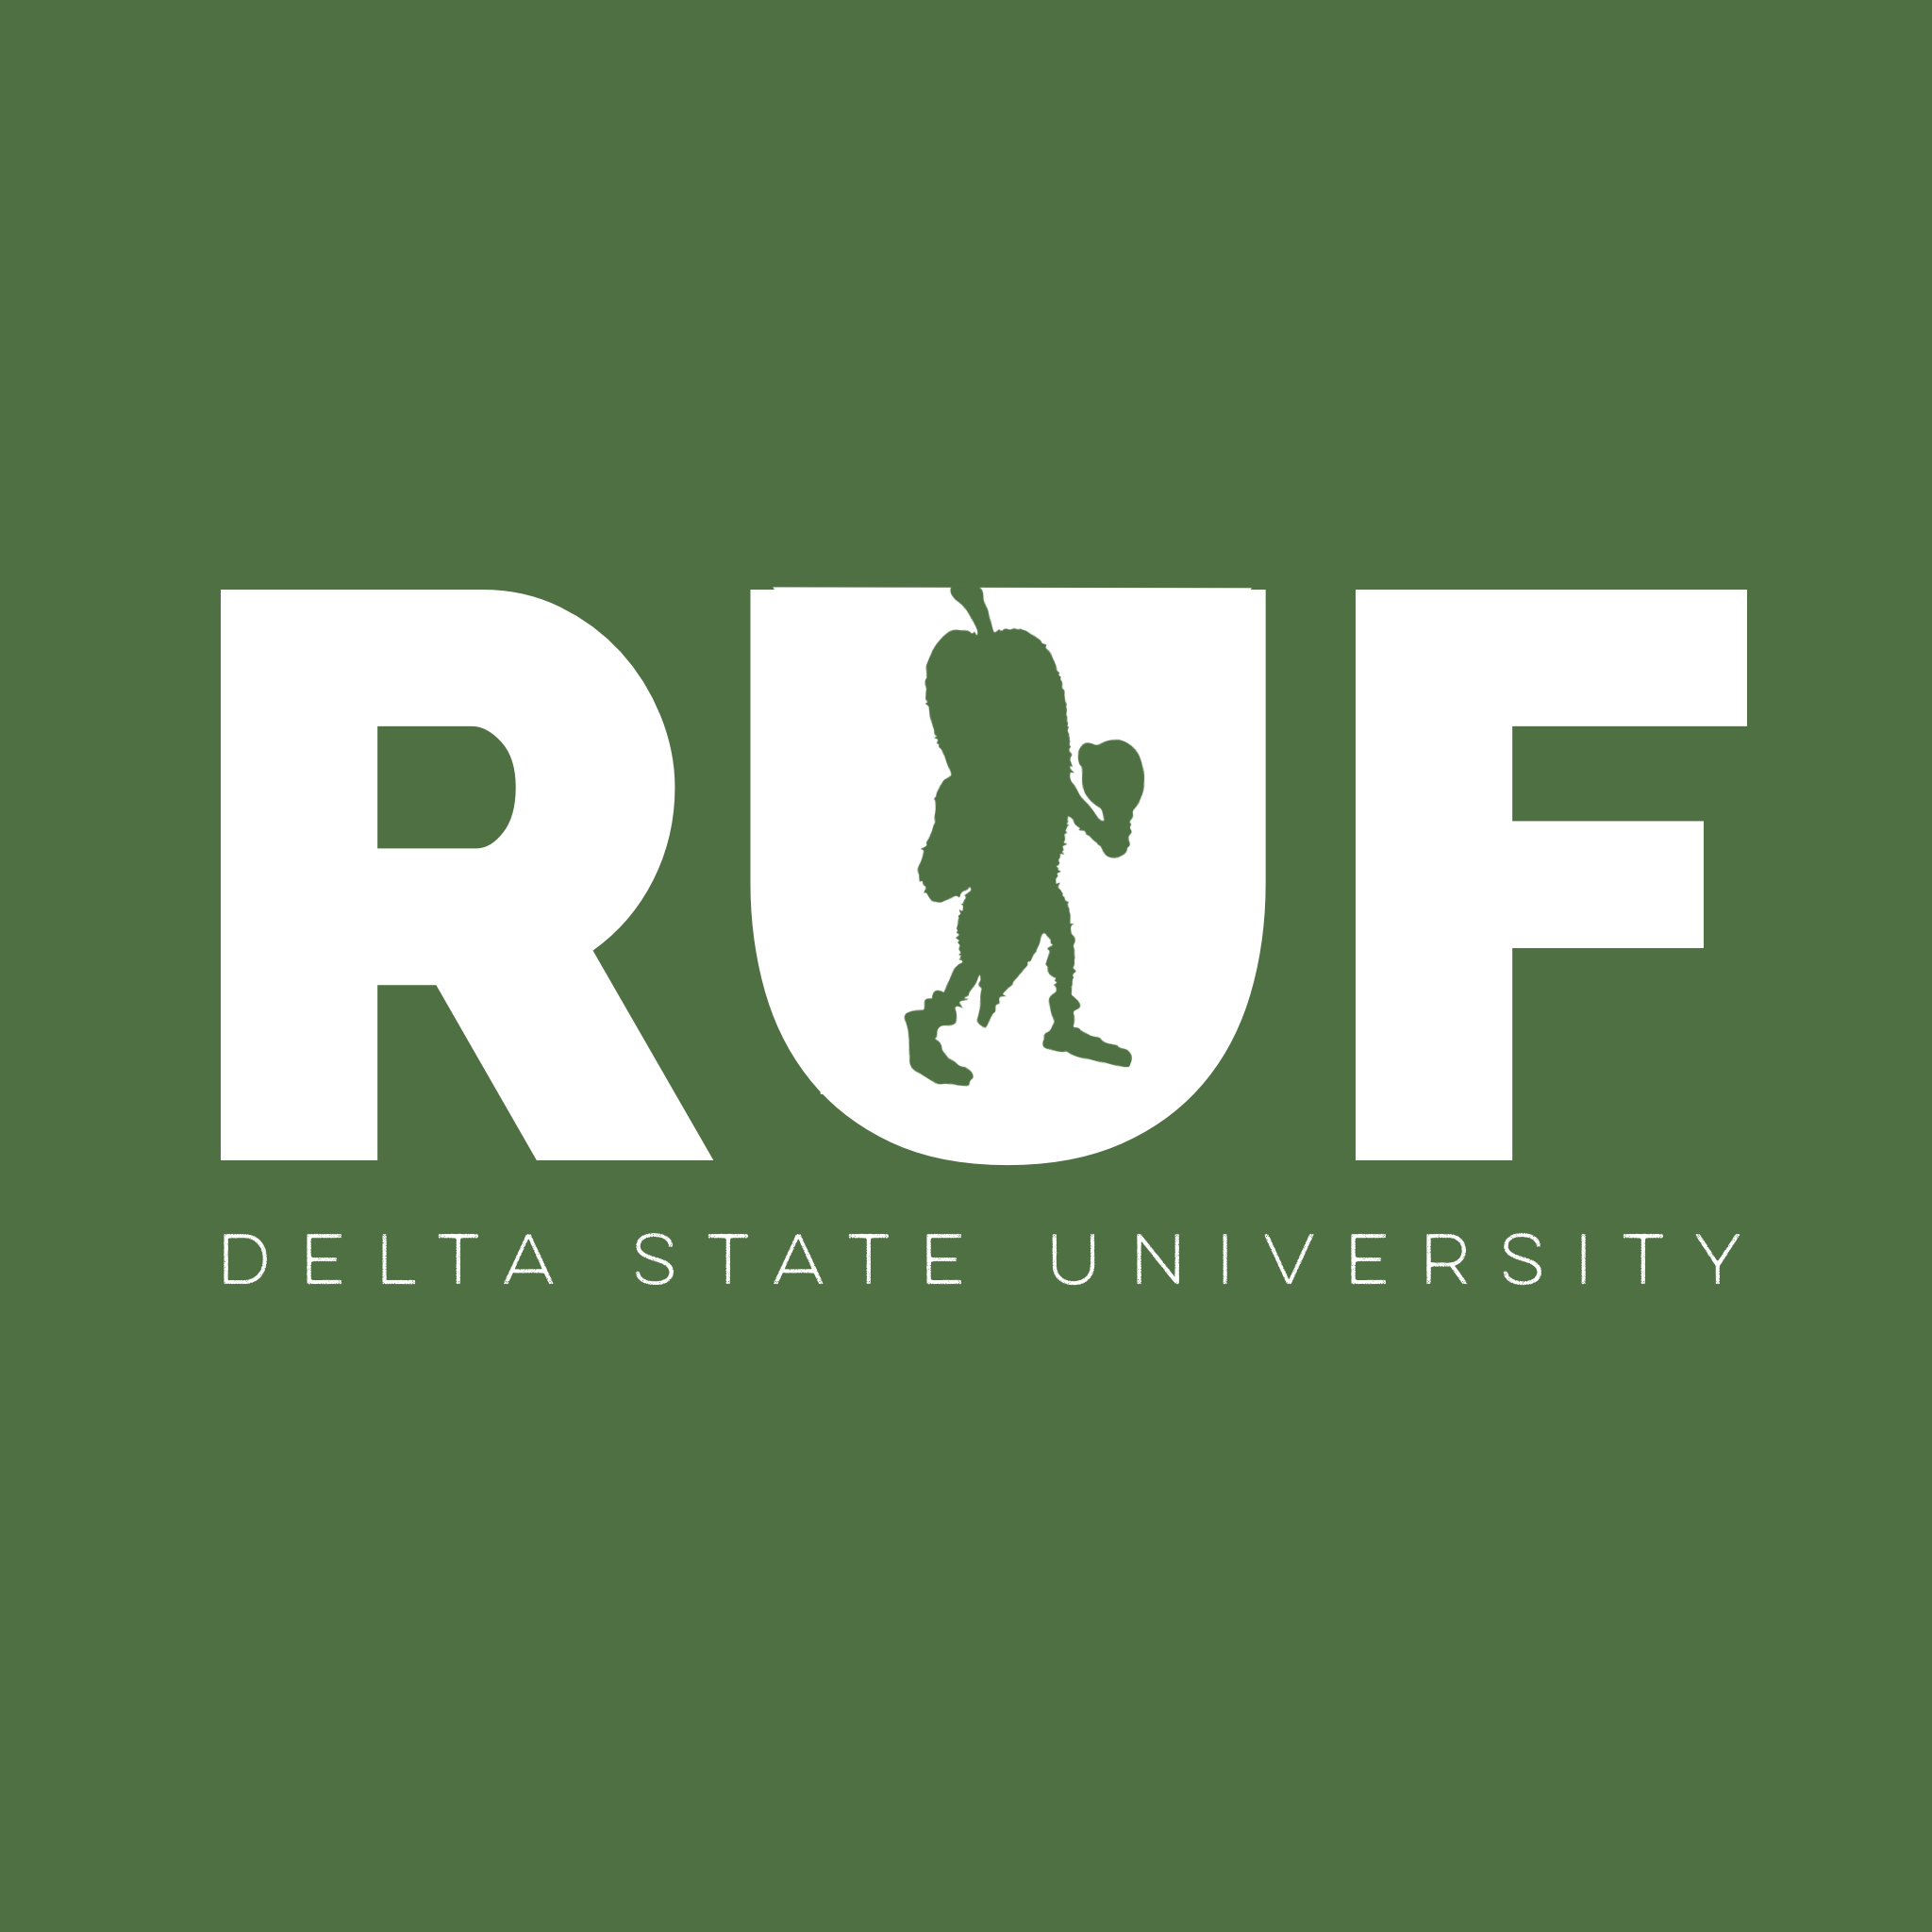 http://www.deltastate.edu/student-affairs/index.php?gf-download=2019%2F12%2FGreen-RUF-Okra-lgo.PNG&form-id=1&field-id=21&hash=829e516ad99fbf04a717b081b0e47161b1cb8733141b1535495be5fc1e897485